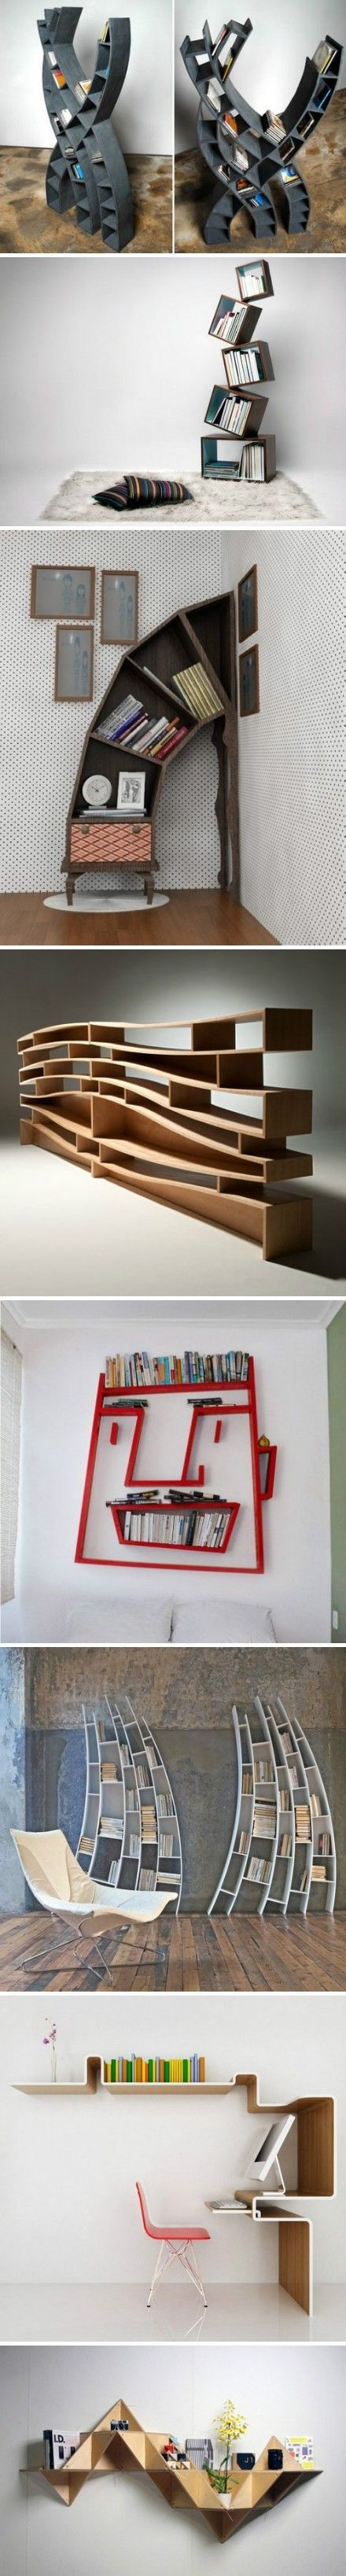 unique diy book shelves not so certain about the face but the rest are awesome ideas bauen. Black Bedroom Furniture Sets. Home Design Ideas